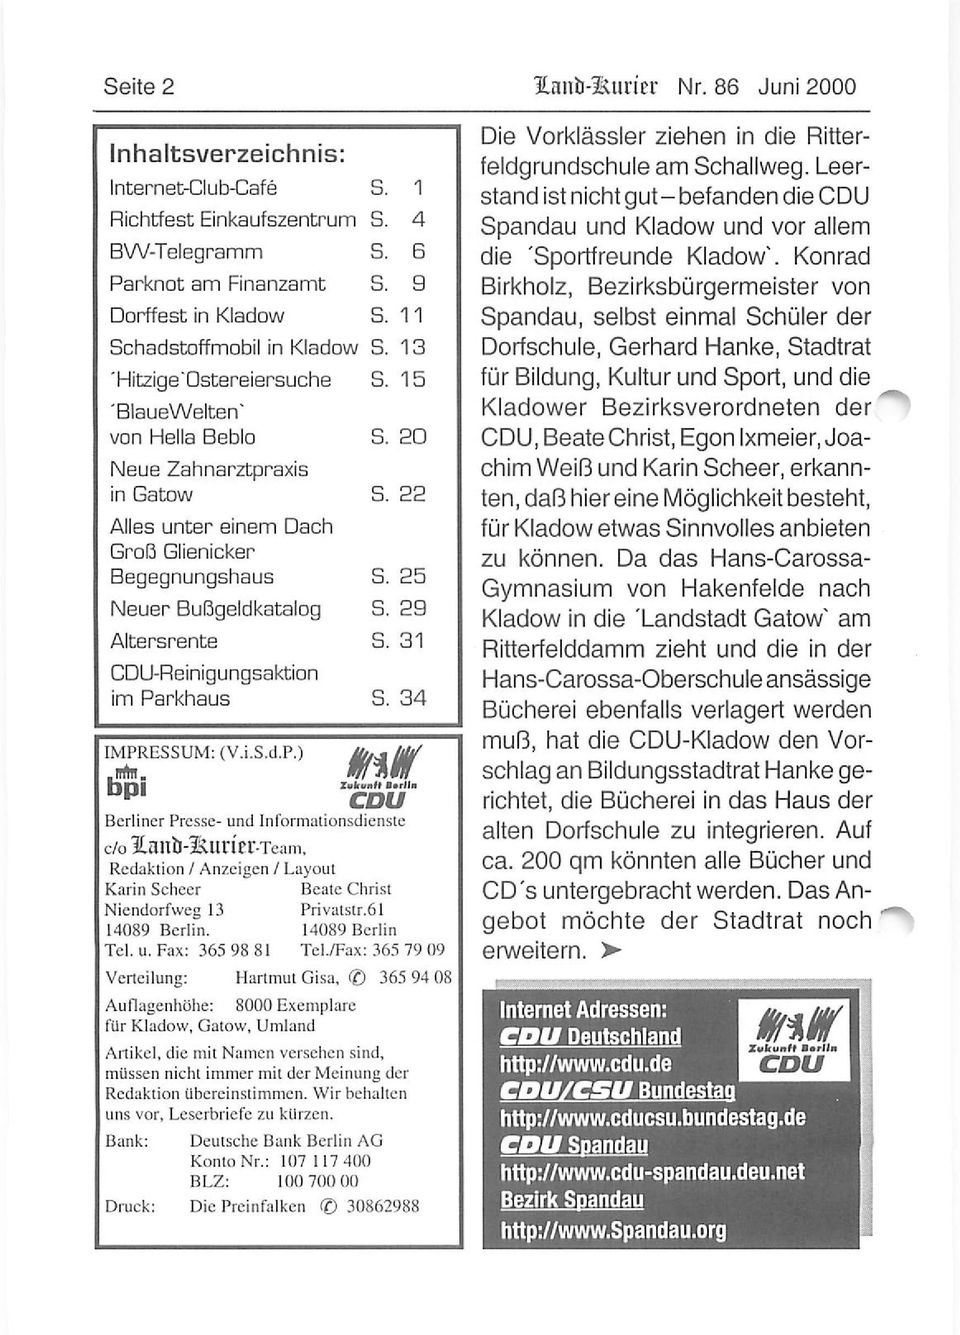 Zahnarzt Kladow Internet-club-cafe In Kladow - Pdf Kostenfreier Download